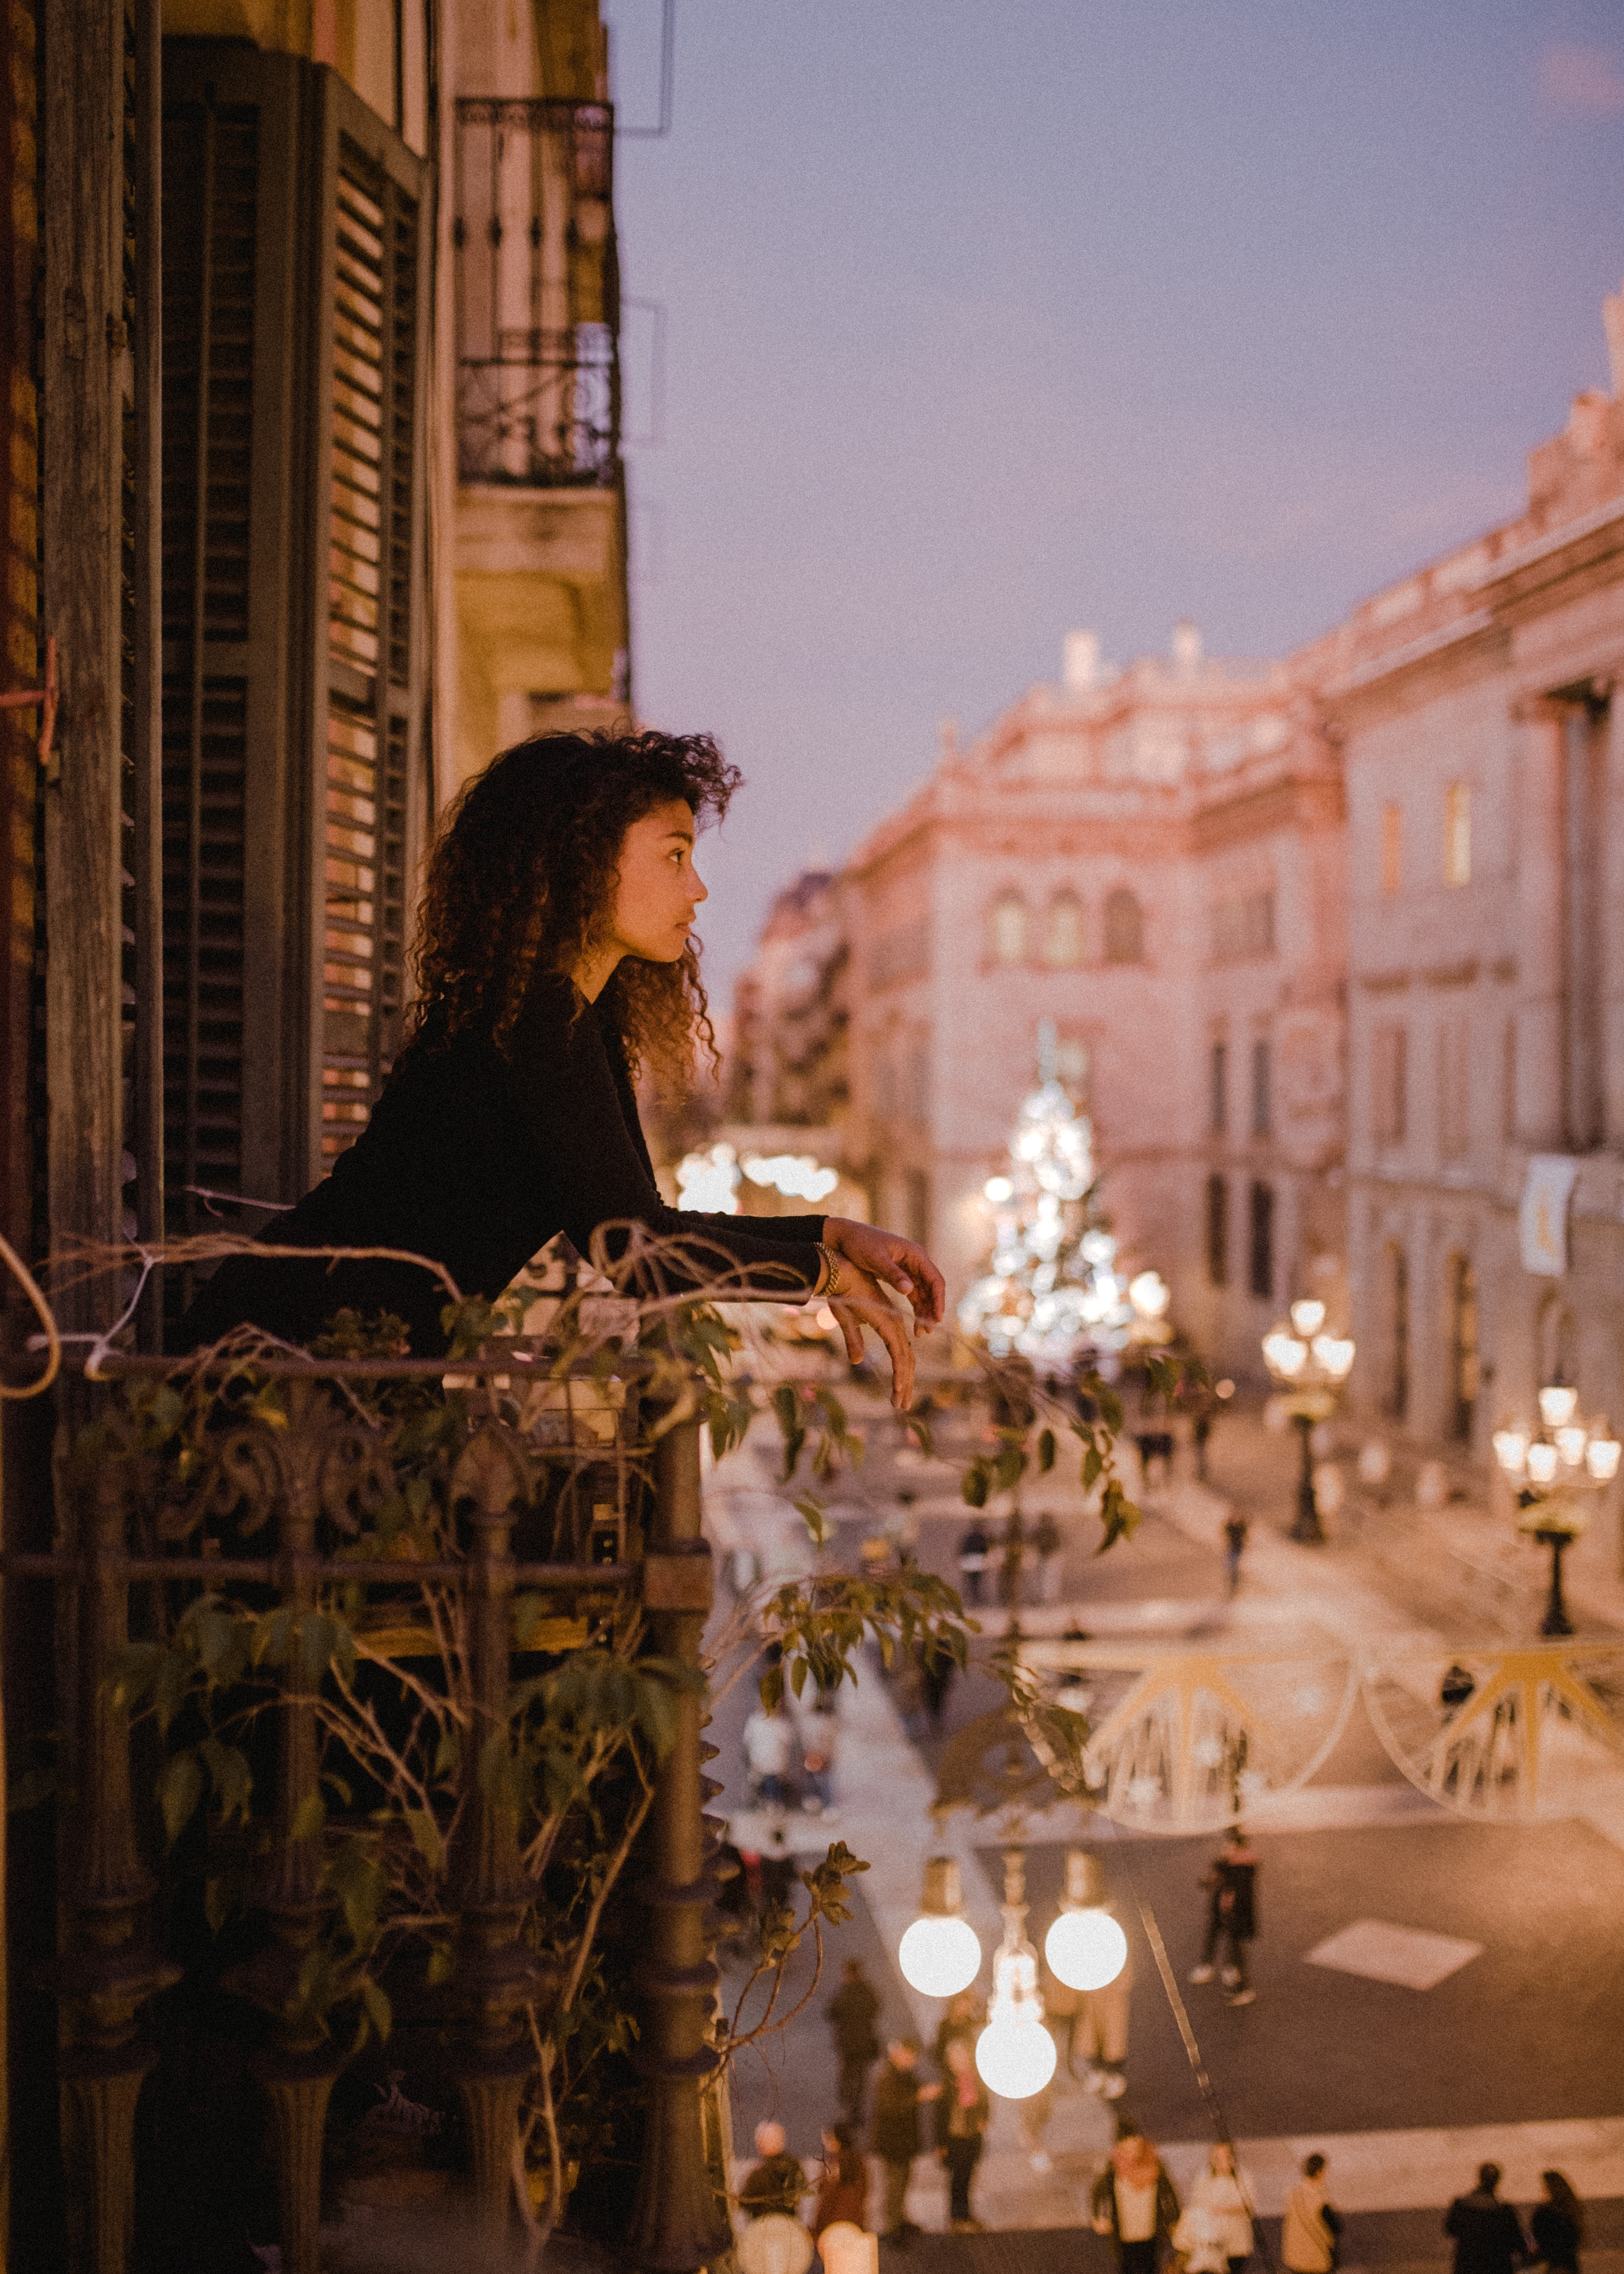 woman leaning on balcony fence